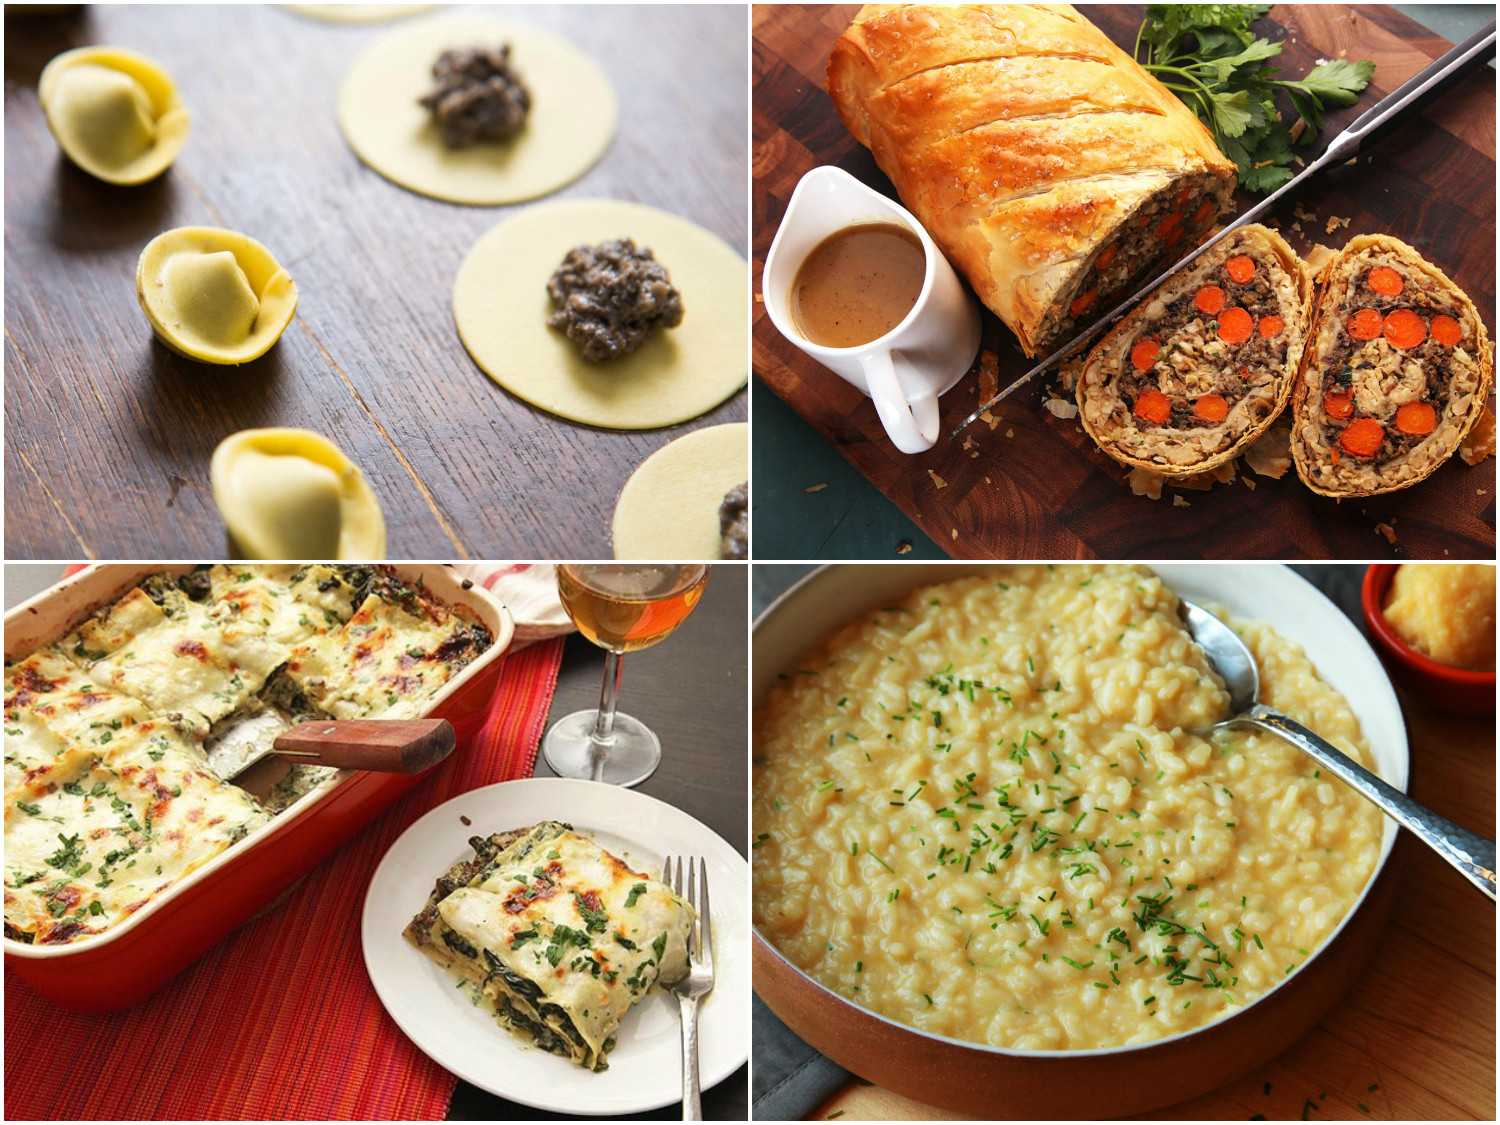 Vegetable Main Dishes  13 Festive Ve arian Main Dishes That Even Omnivores Will